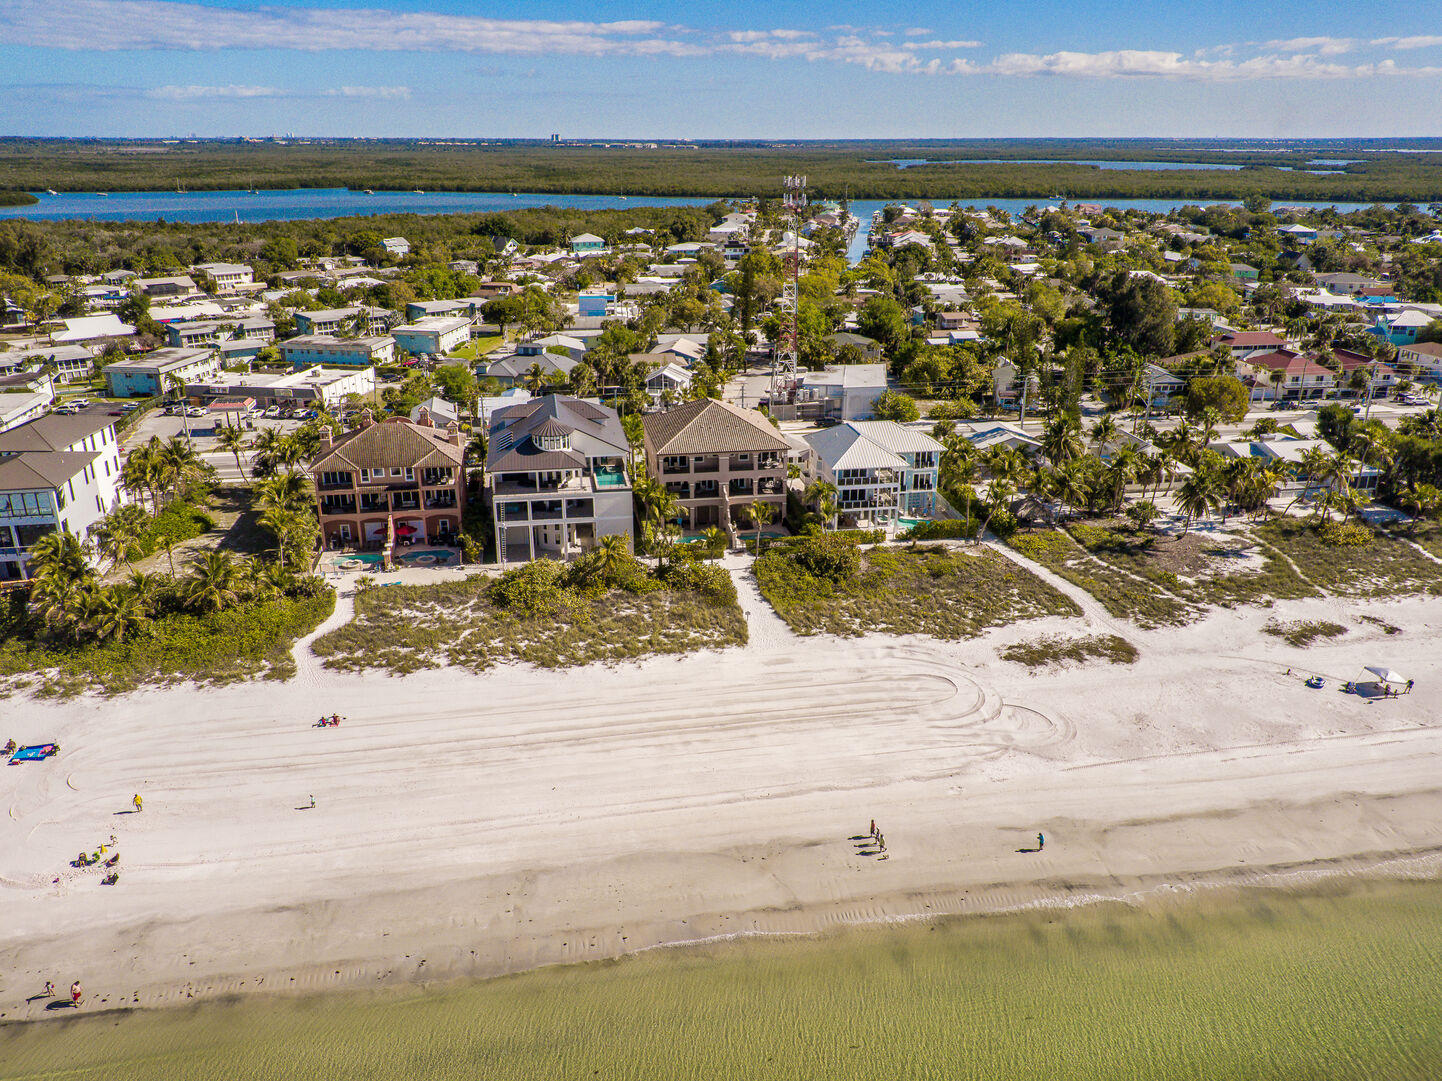 Aerial view of the area near our Fort Myers vacation home rental